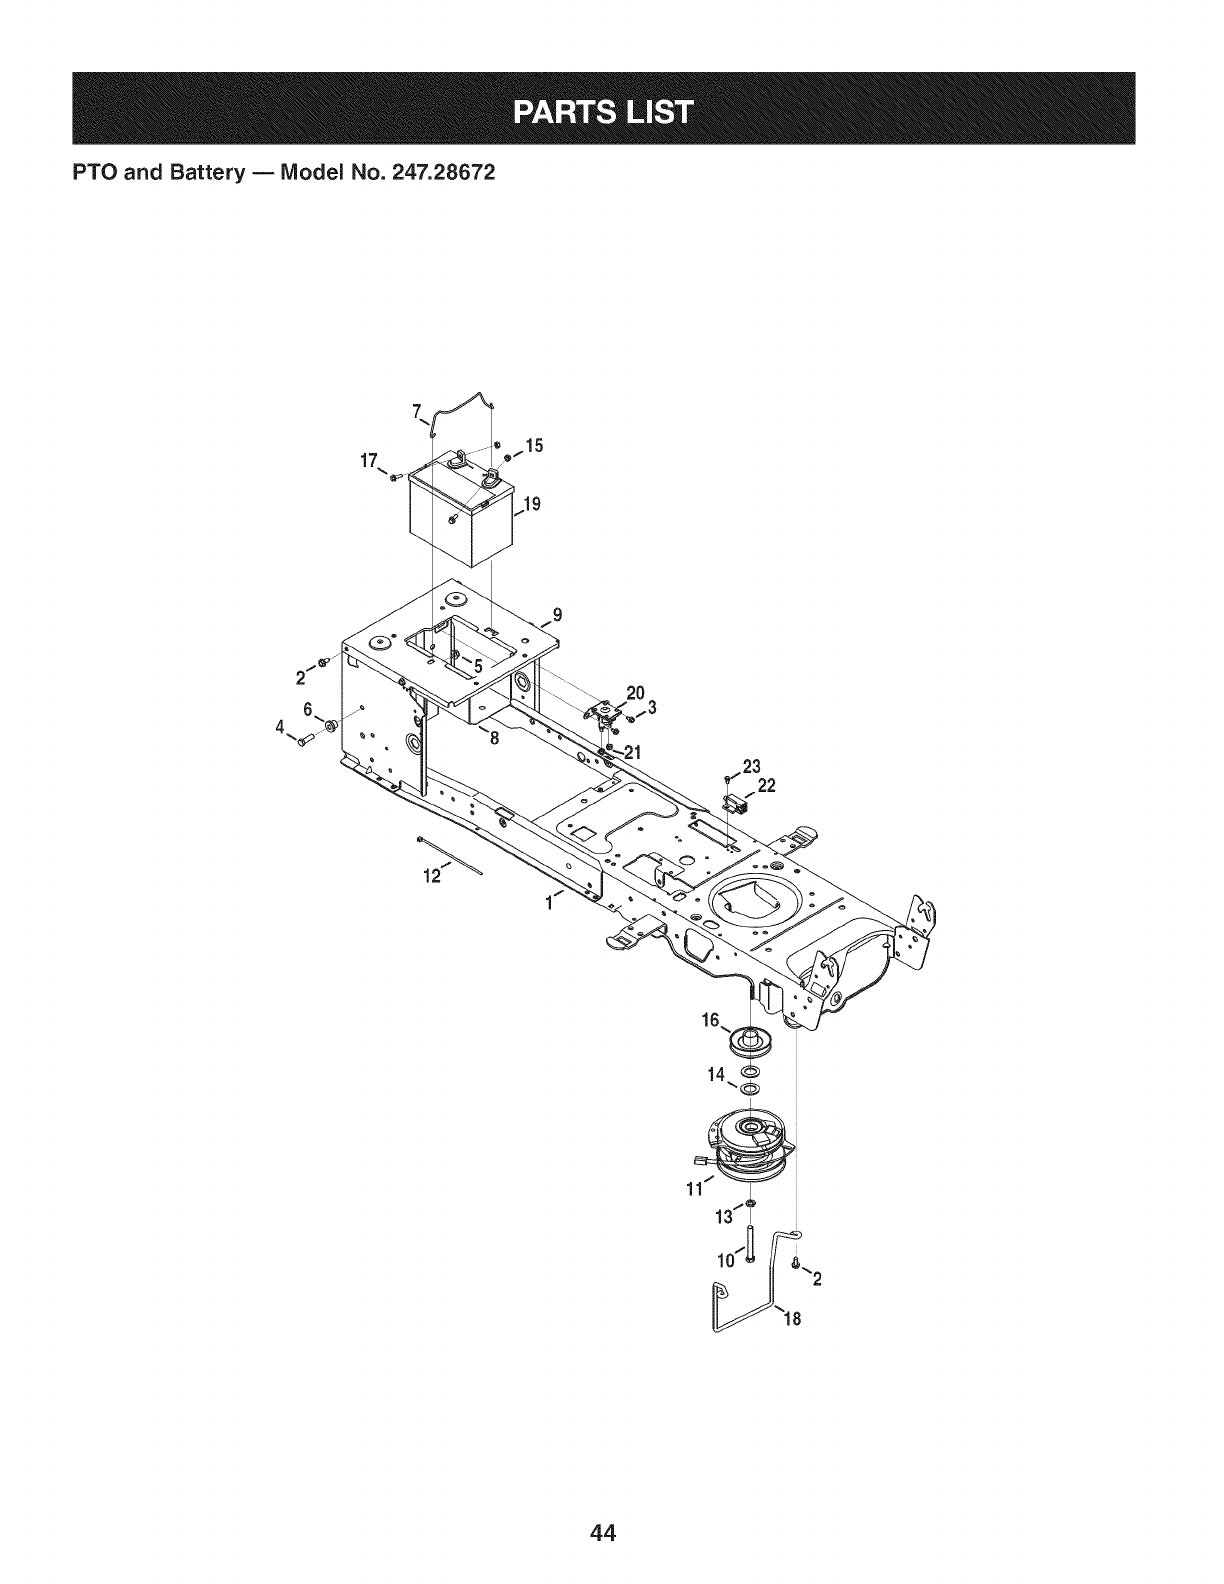 Page 44 of Craftsman Lawn Mower PYT 9000 User Guide